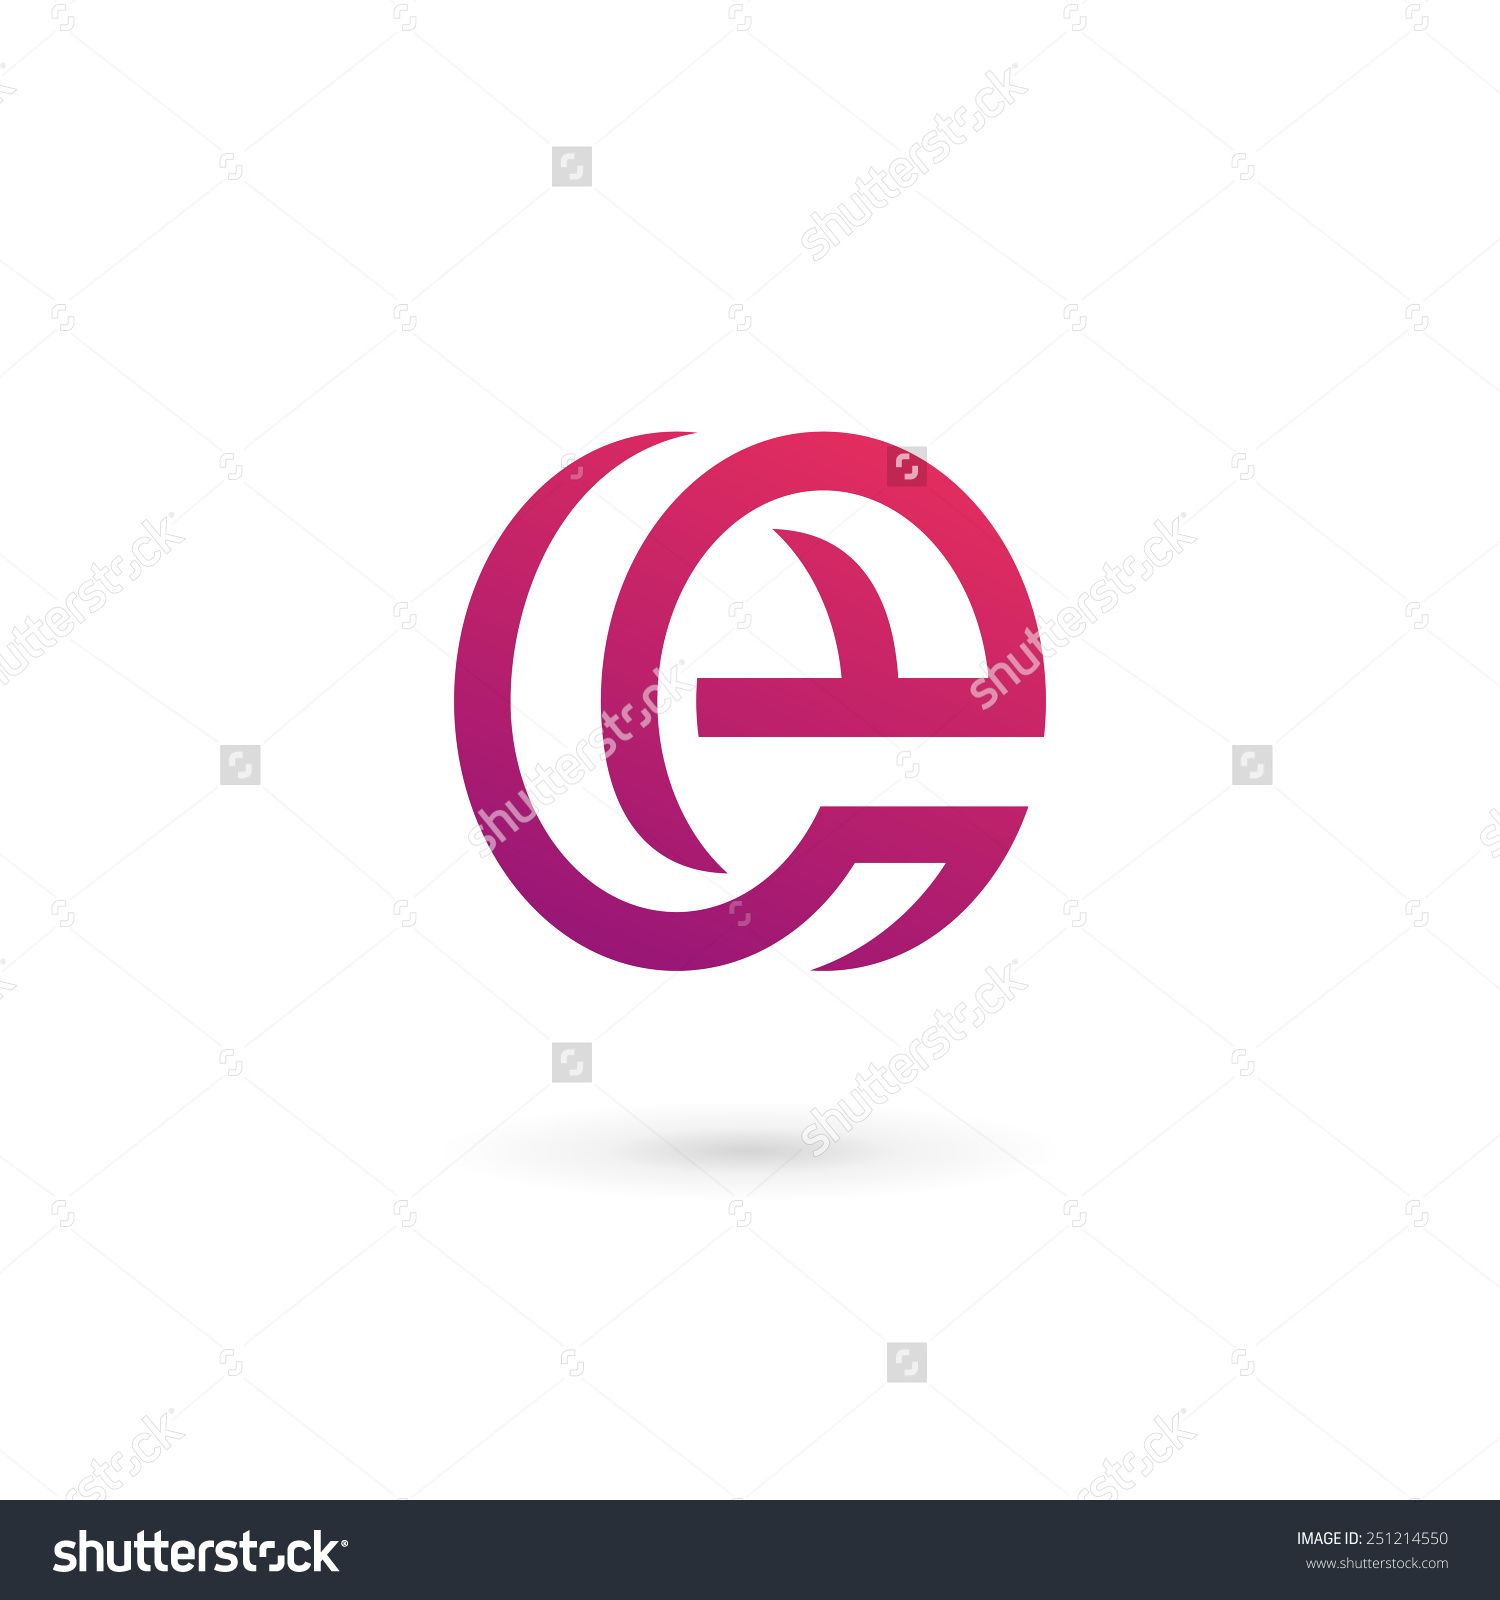 Letter E logo icon design template elements Preview. Save to a ...